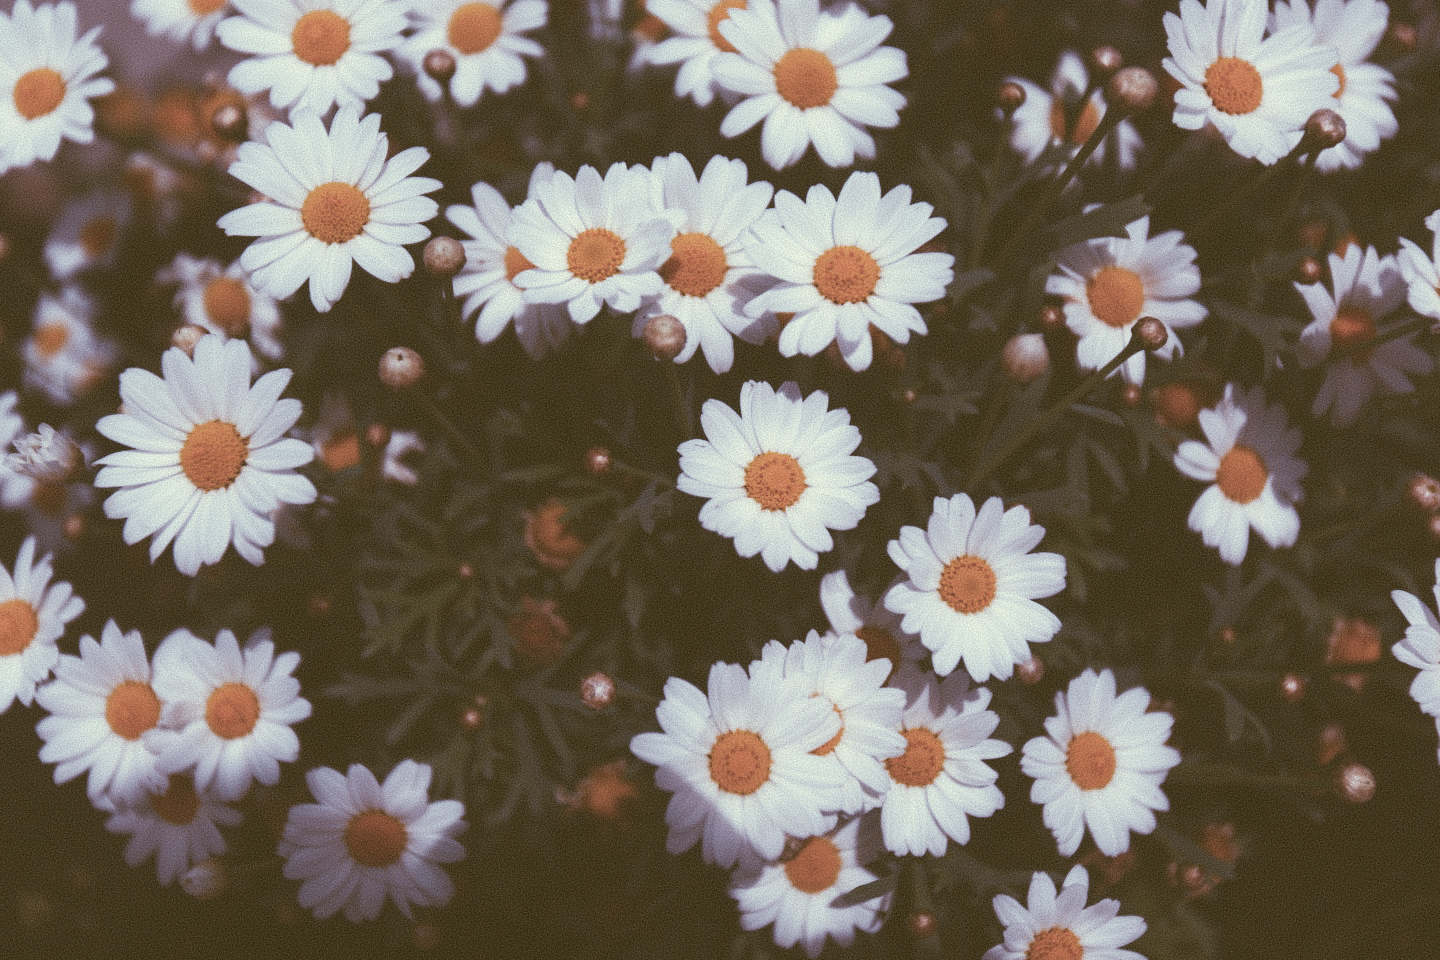 403 Forbidden Vintage Daisy Wallpaper